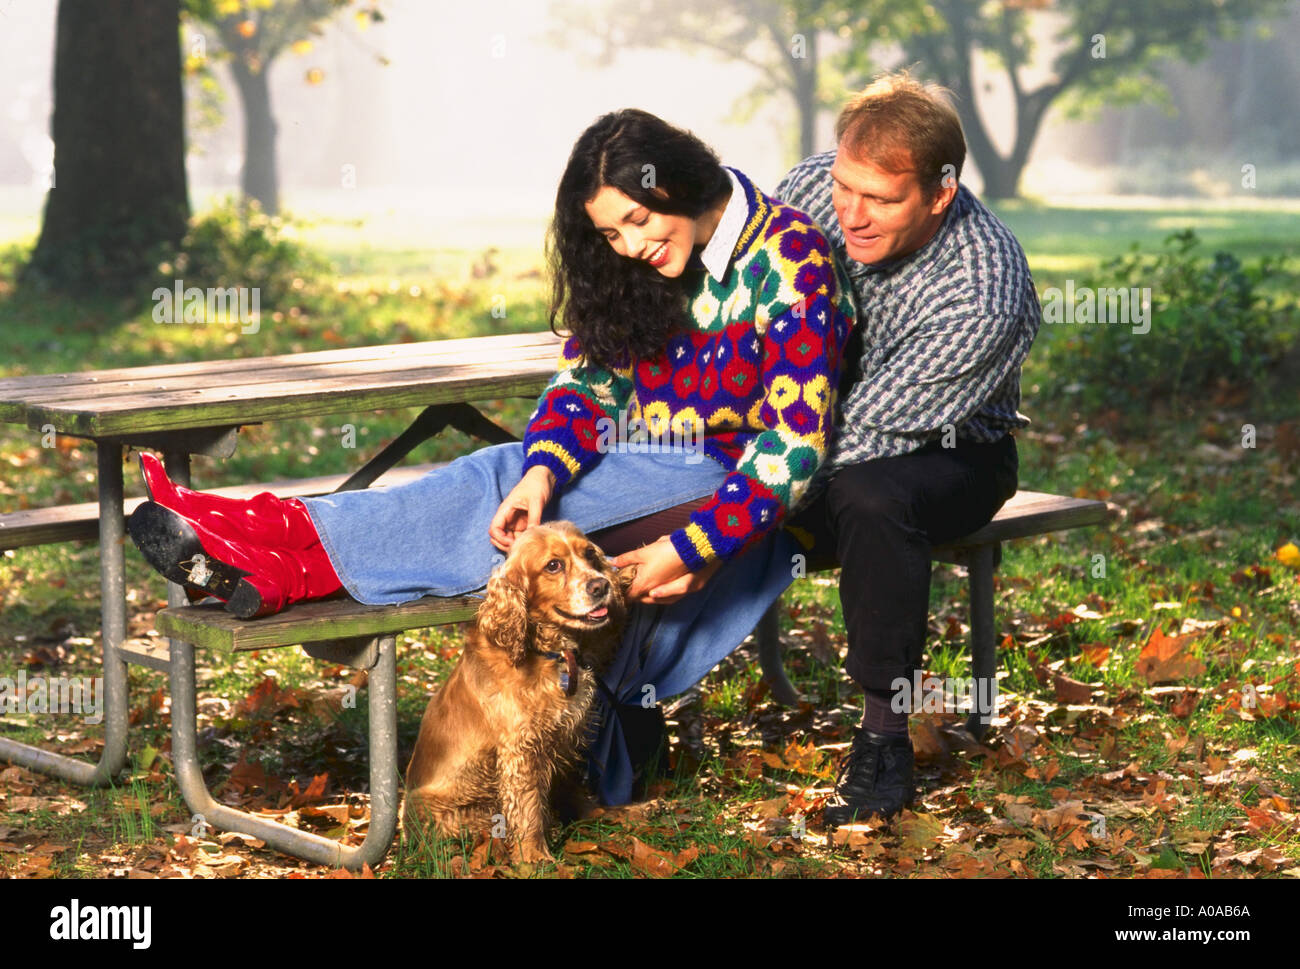 Young couple sitting at picnic table with cocker spaniel dog - Stock Image